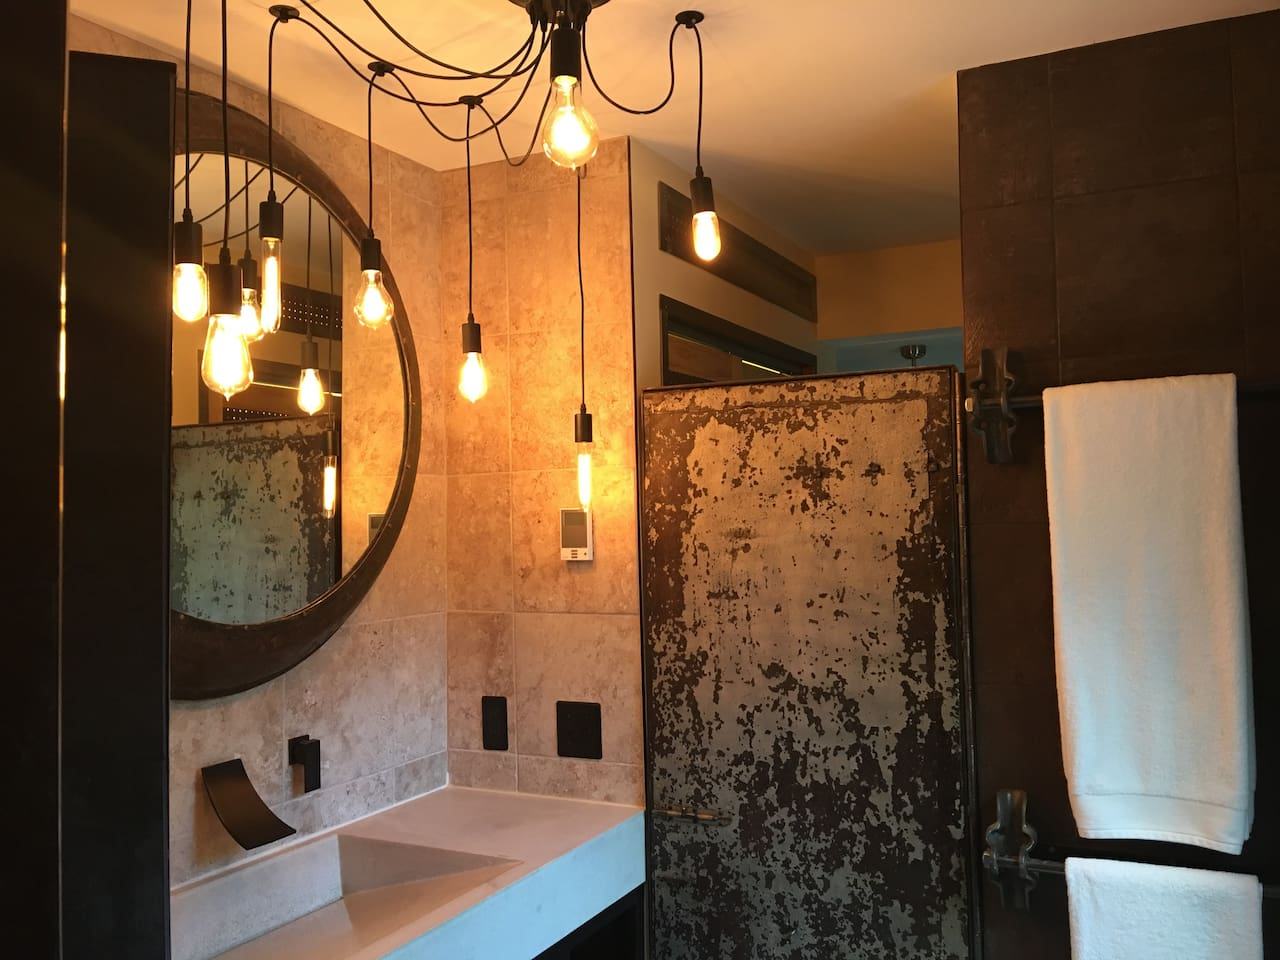 Fully Tiled Brick House Suite Industrial Bathroom with Edison Fixture